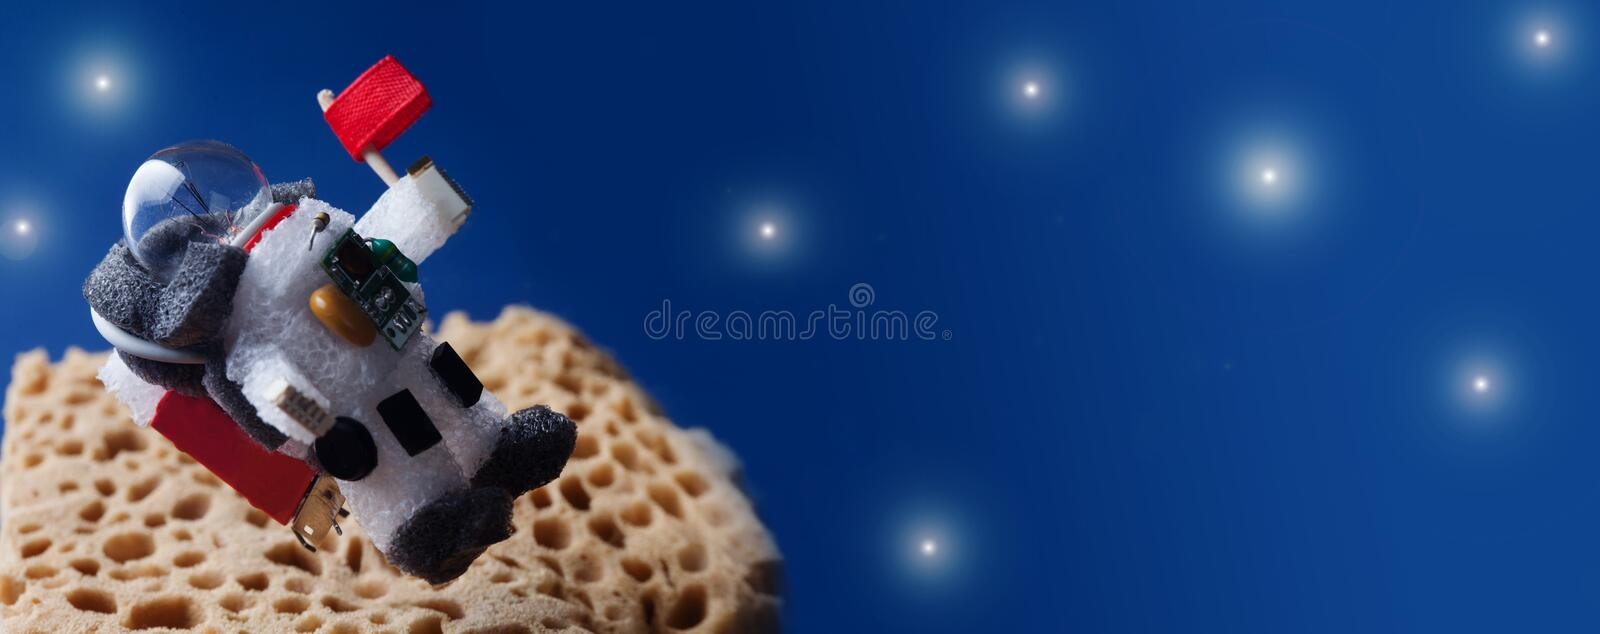 Spaceman floating stratosphere, planet blue sky stars background. Light bulb character dressed in spacesuit astronaut royalty free stock images